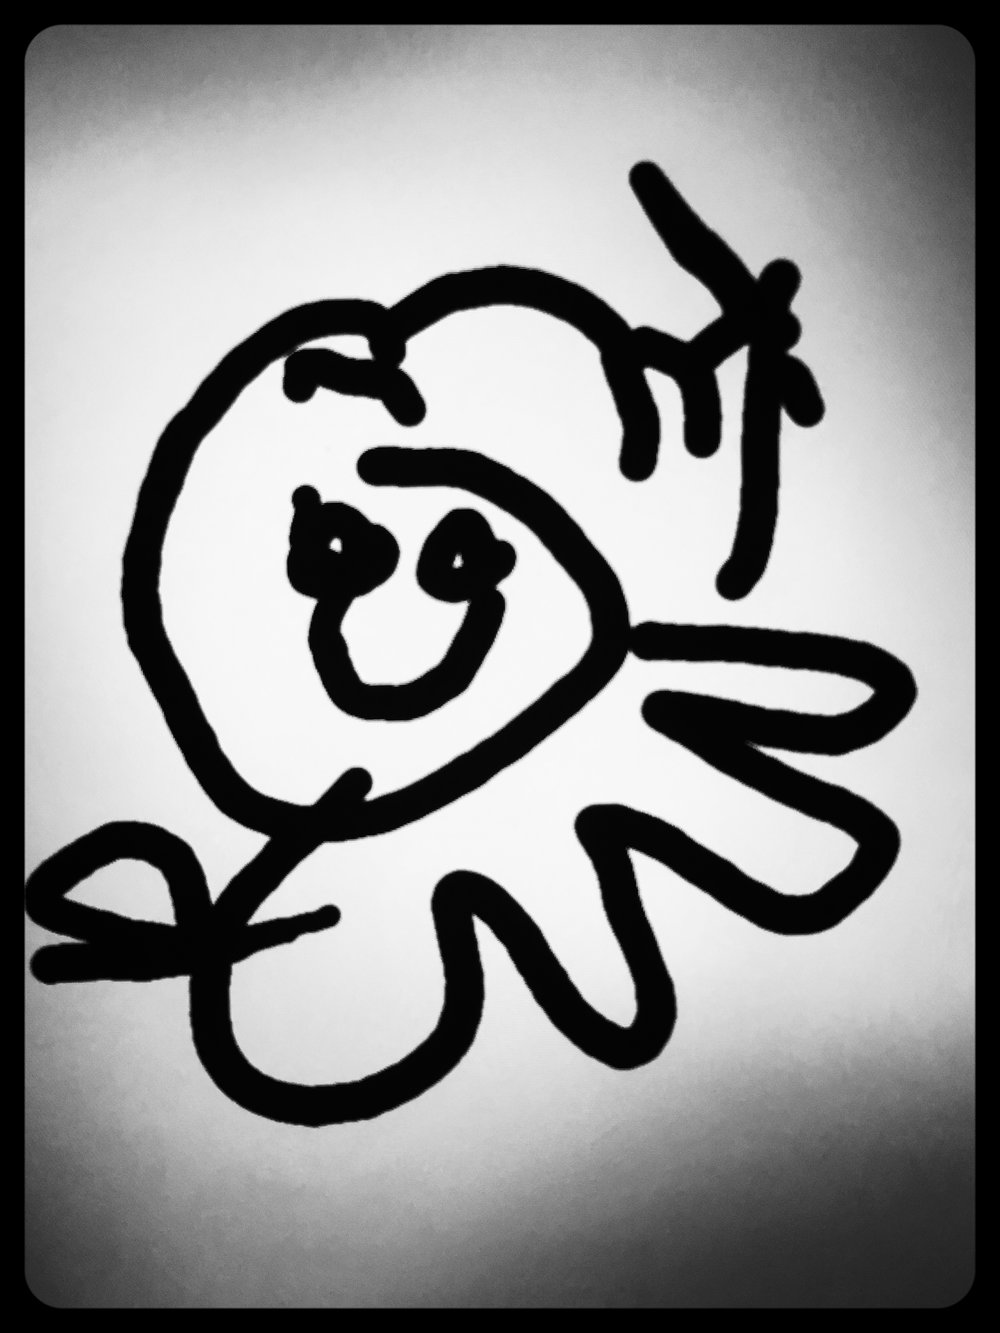 Delson's drawing